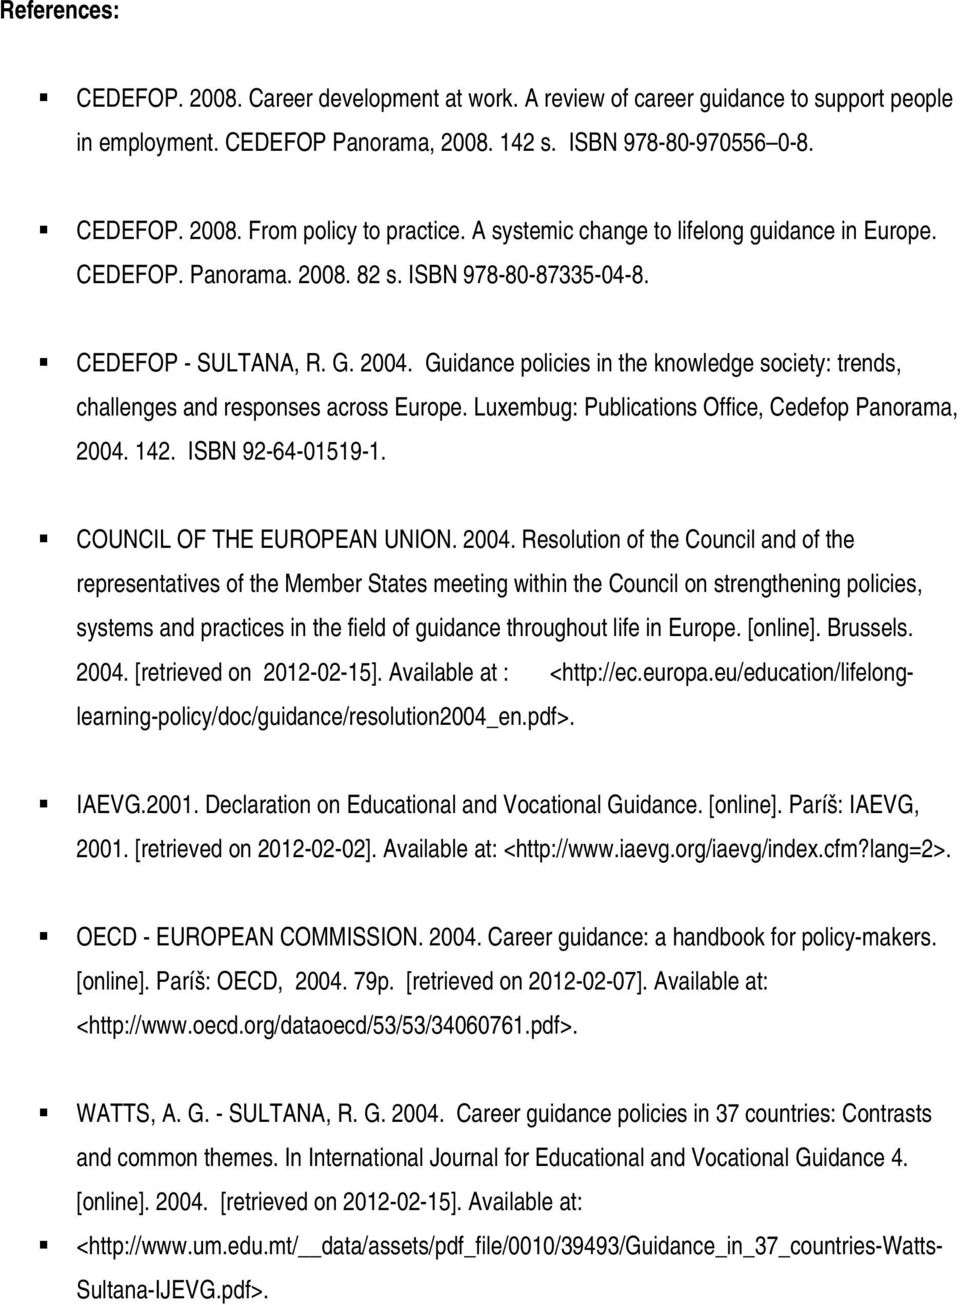 Guidance policies in the knowledge society: trends, challenges and responses across Europe. Luxembug: Publications Office, Cedefop Panorama, 2004. 142. ISBN 92-64-01519-1.